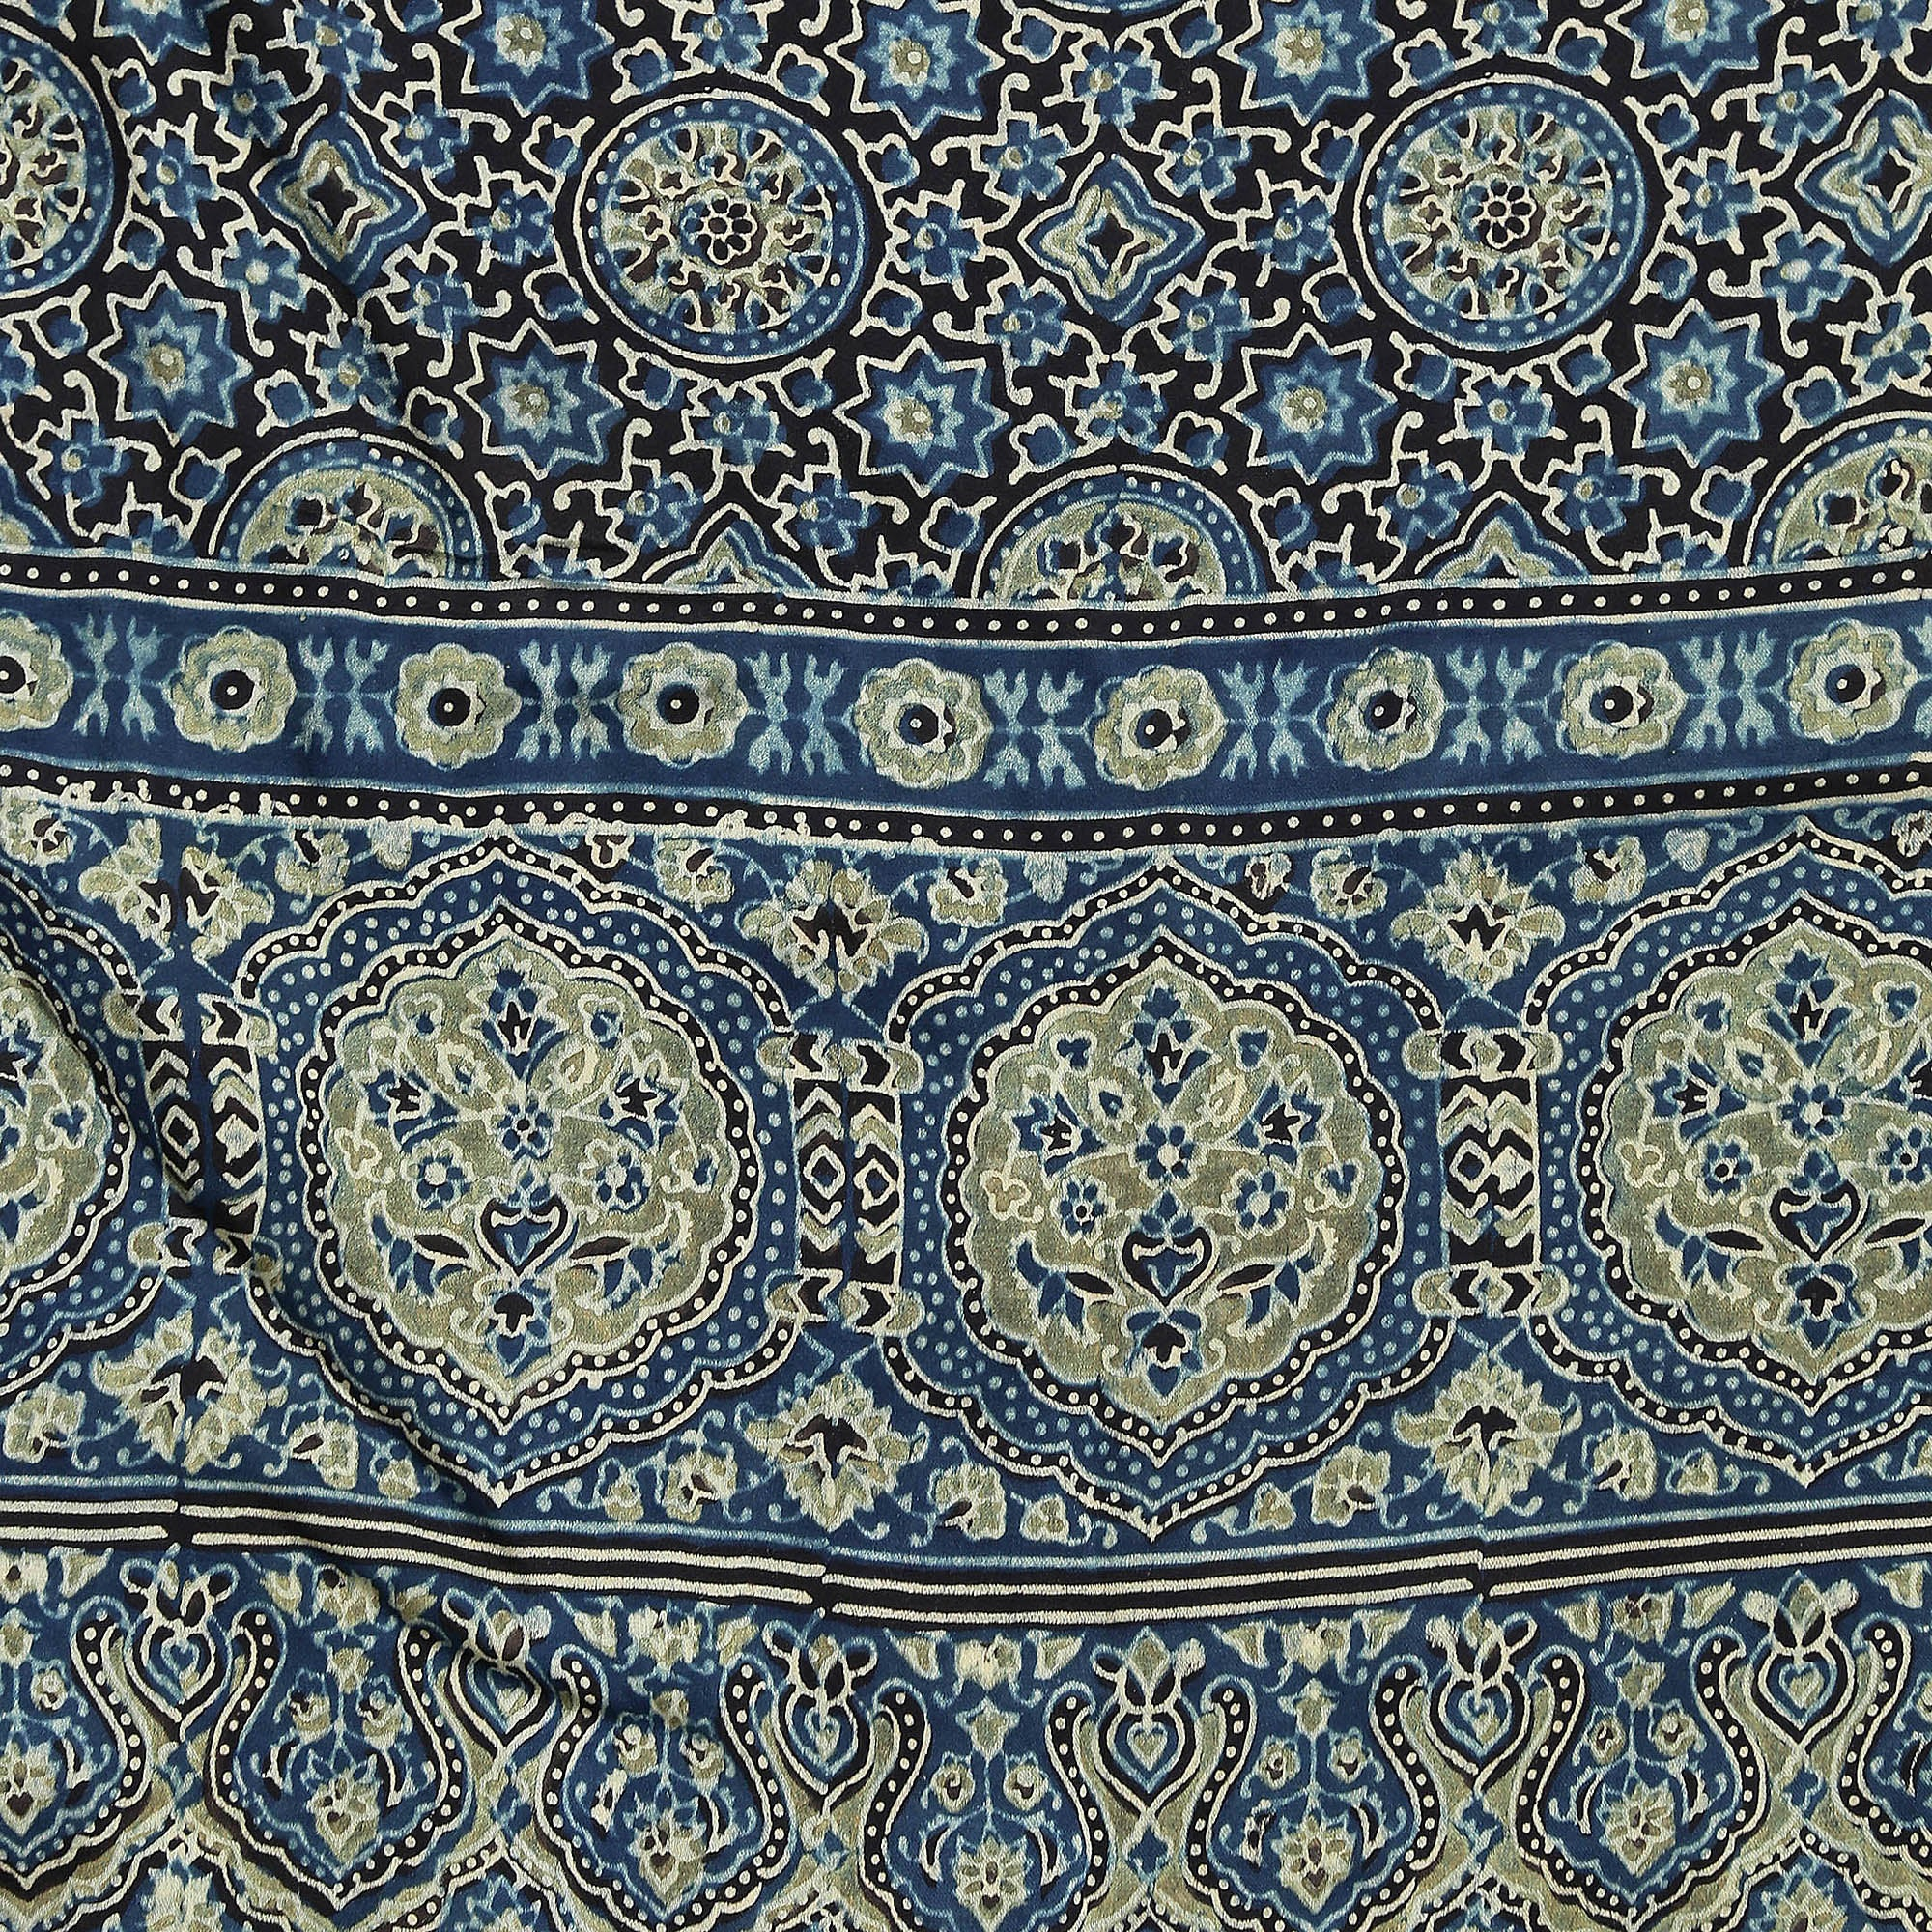 Exotic Modal Silk Handmade Scarf-Scarf-Kalakari India-SKAJST0009-Ajrakh, Gaji Silk, Geographical Indication, Hand Blocks, Hand Crafted, Heritage Prints, Scarf, Silk, Sustainable Fabrics, Vegan Silk-[Linen,Ethnic,wear,Fashionista,Handloom,Handicraft,Indigo,blockprint,block,print,Cotton,Chanderi,Blue, latest,classy,party,bollywood,trendy,summer,style,traditional,formal,elegant,unique,style,hand,block,print, dabu,booti,gift,present,glamorous,affordable,collectible,Sari,Saree,printed, holi, Diwali,